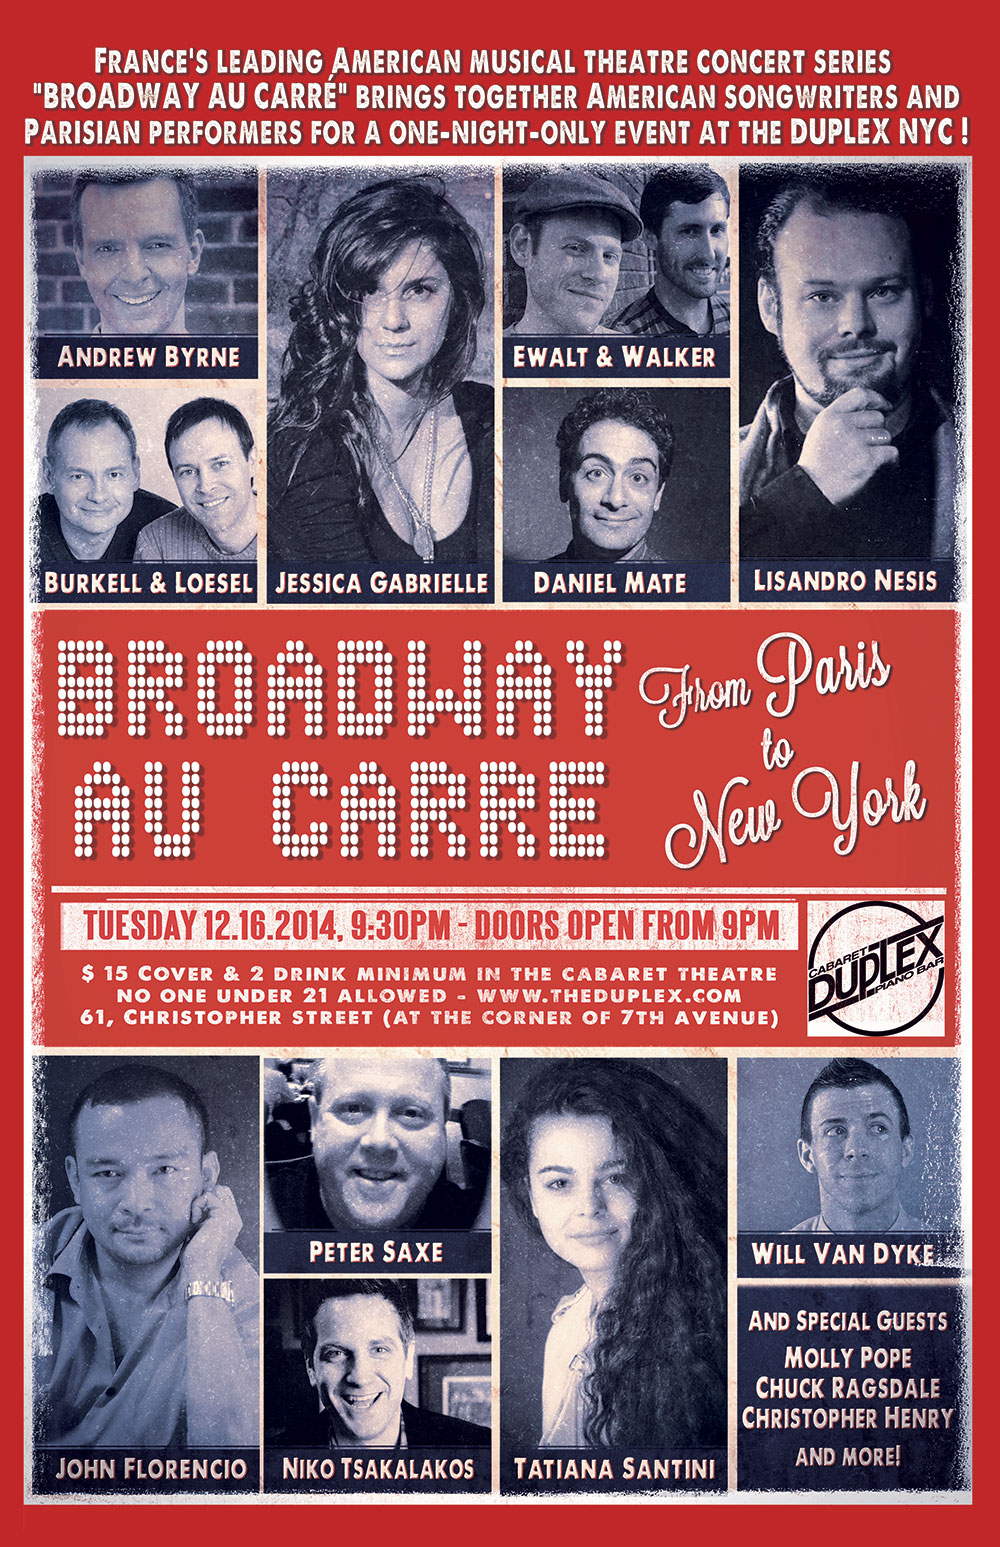 Broadway au Carré - From Paris to New York